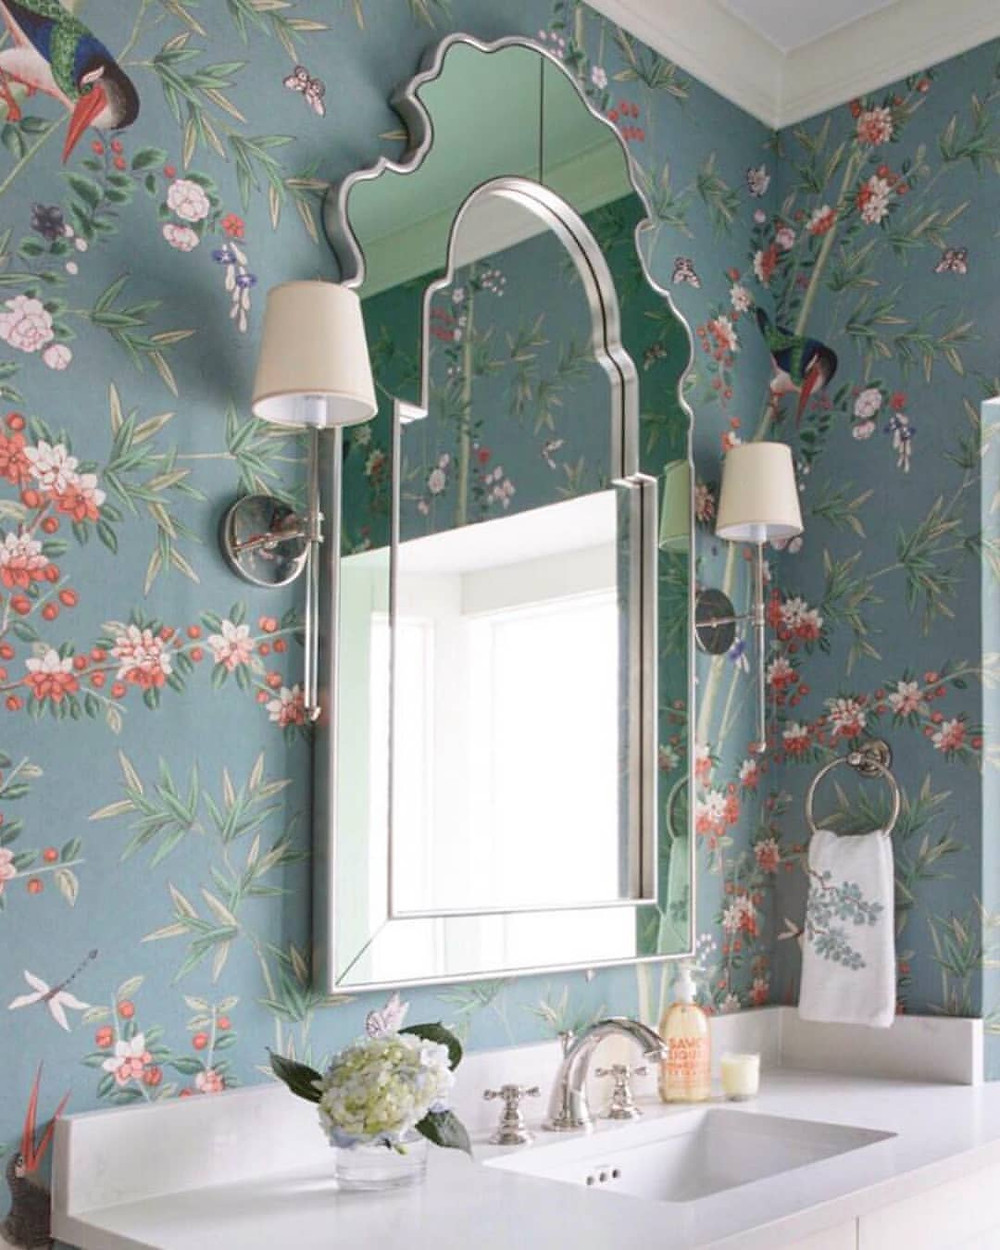 blue floral and bird wallpaper by schumacher in a bathroom